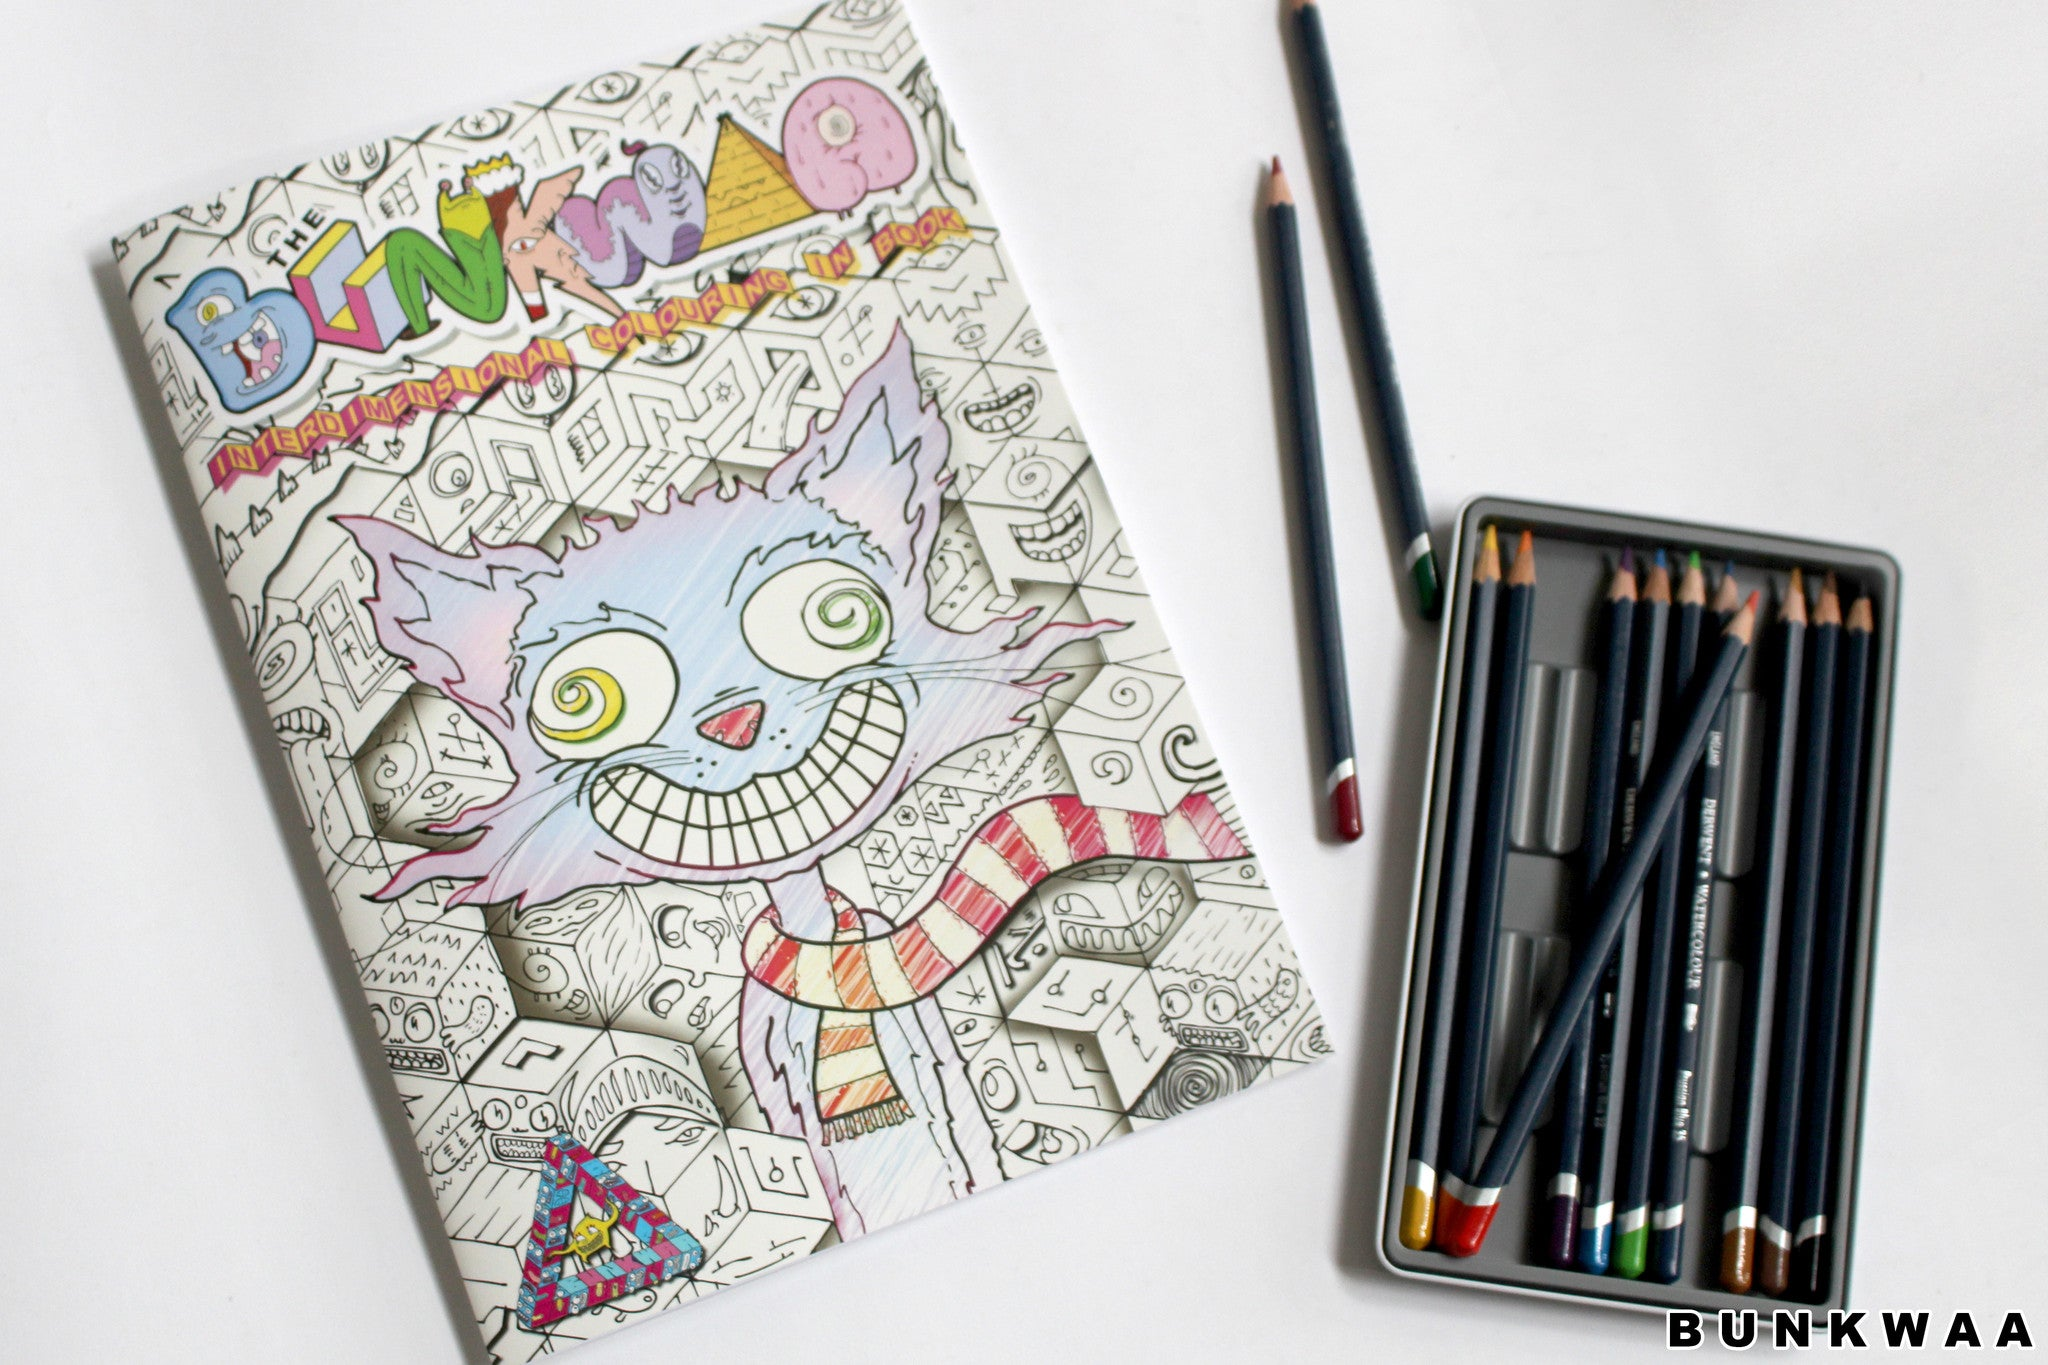 BUNKWAA inter-dimensional Colouring book